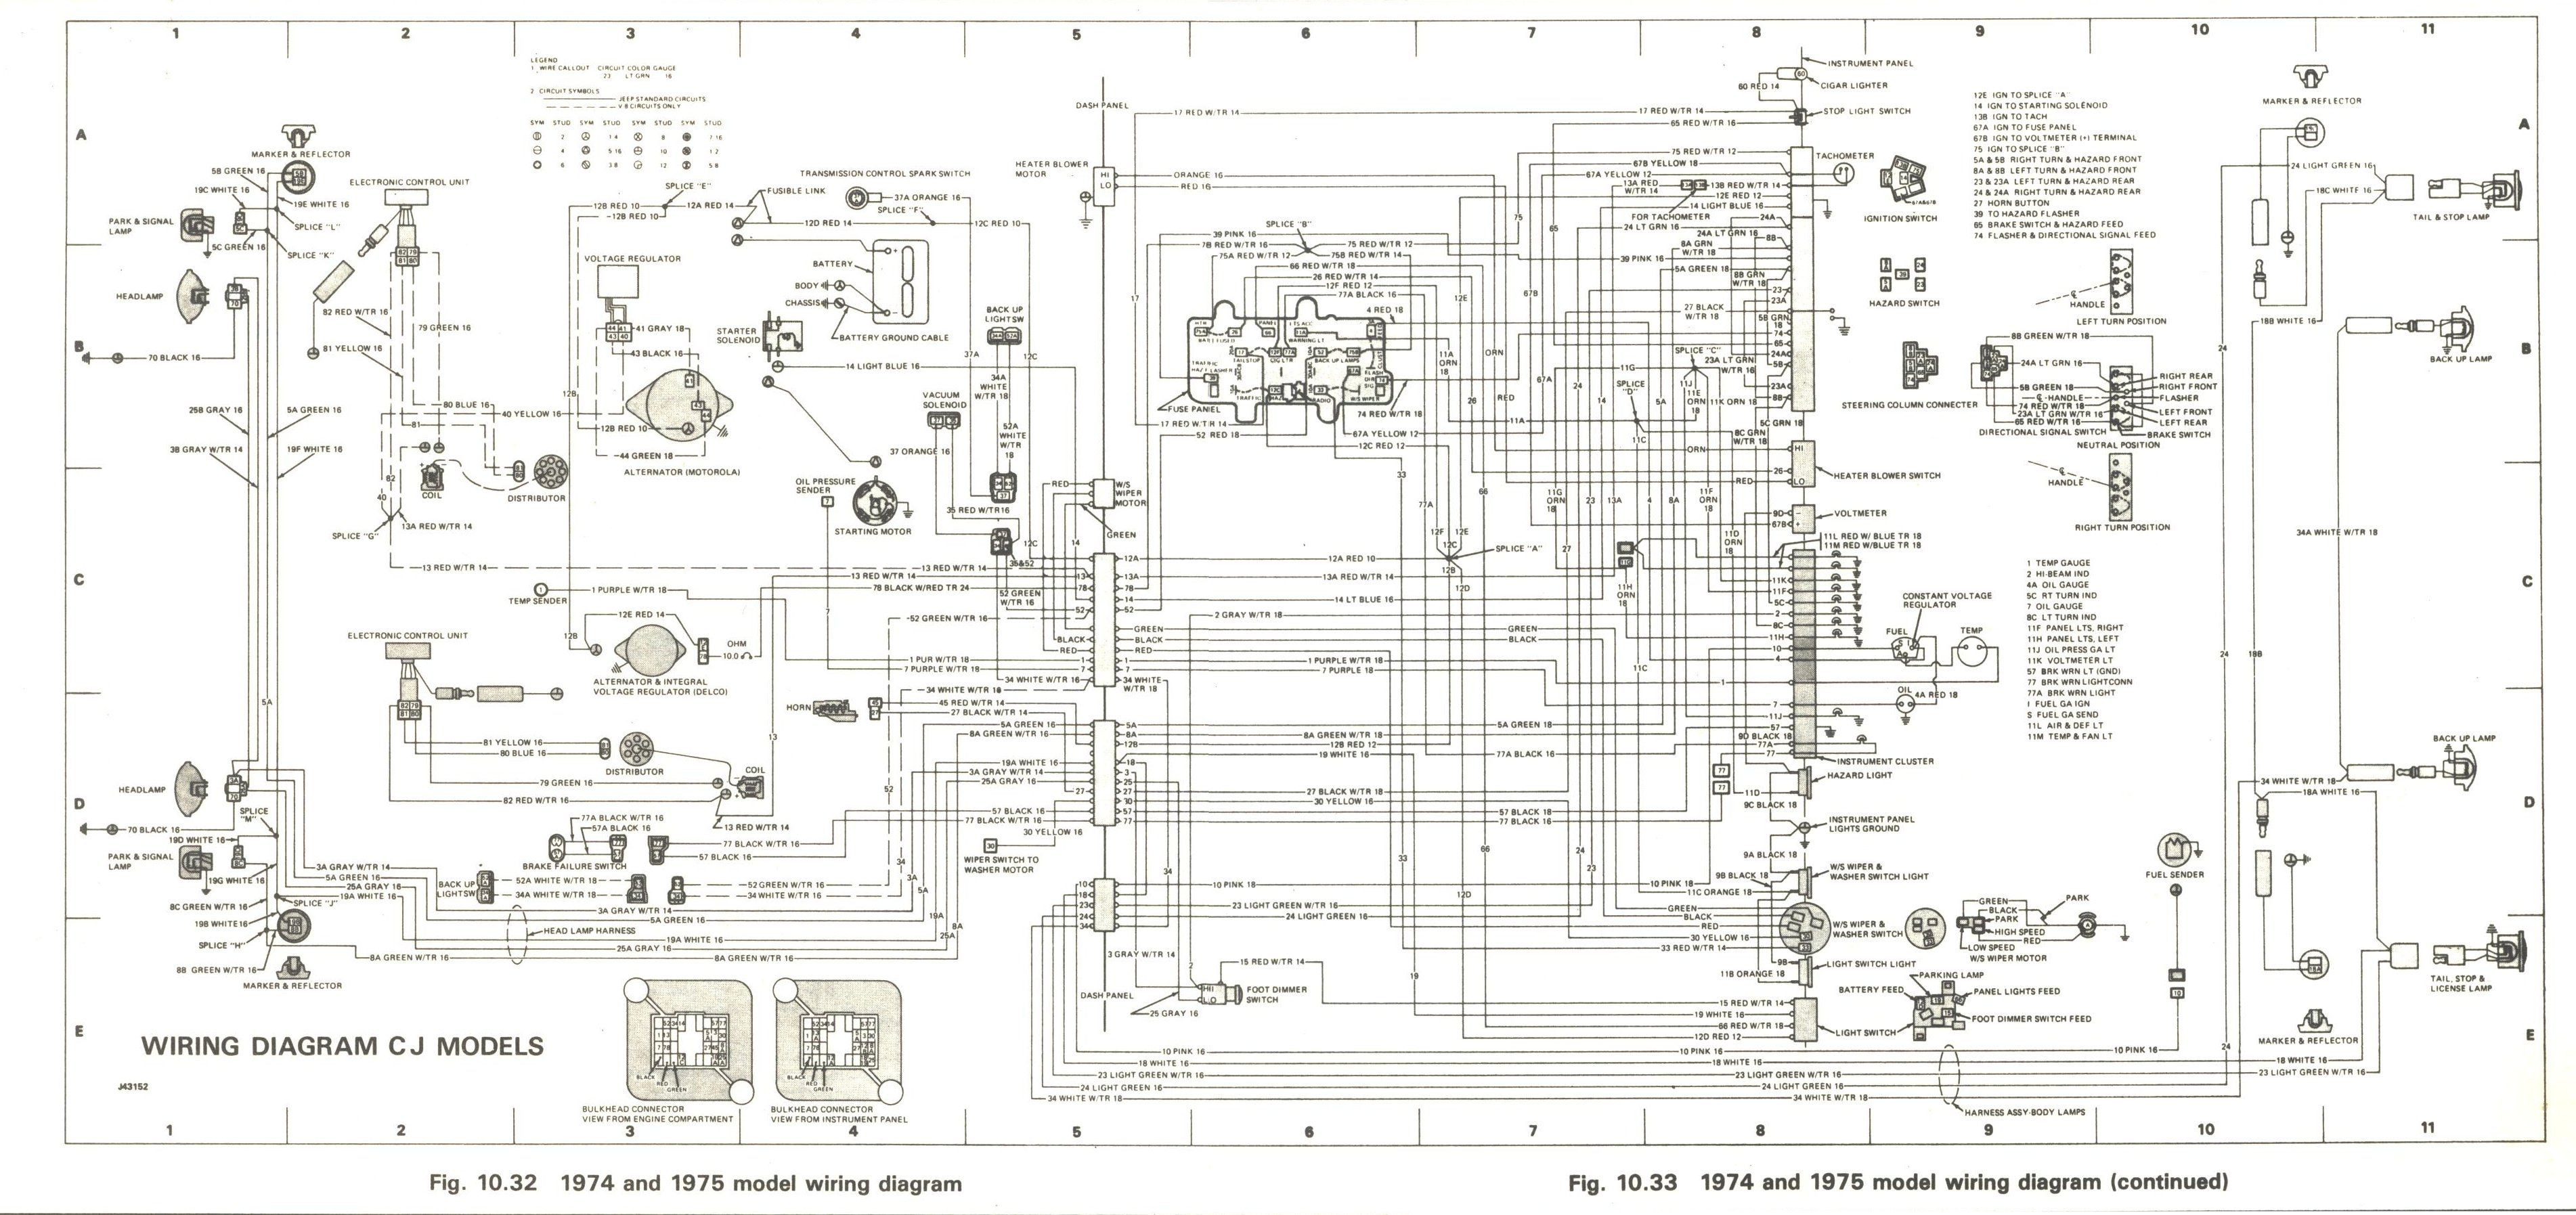 wiring diagram 1980 jeep cj7 wiring library u2022 vanesa co rh vanesa co 1979 jeep cj7 wiring diagram 1979 jeep cj7 wiring diagram